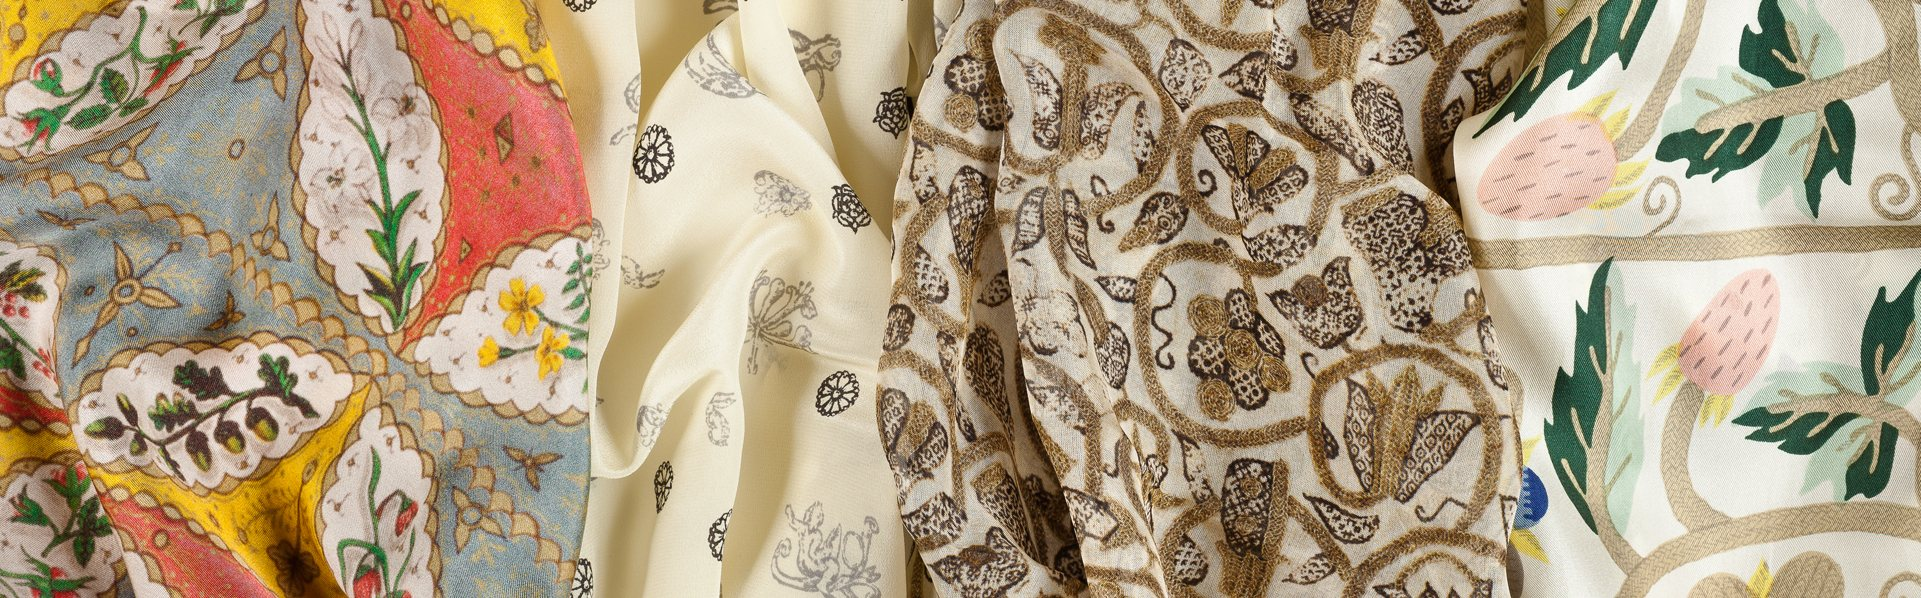 Beckford Silk Scarves